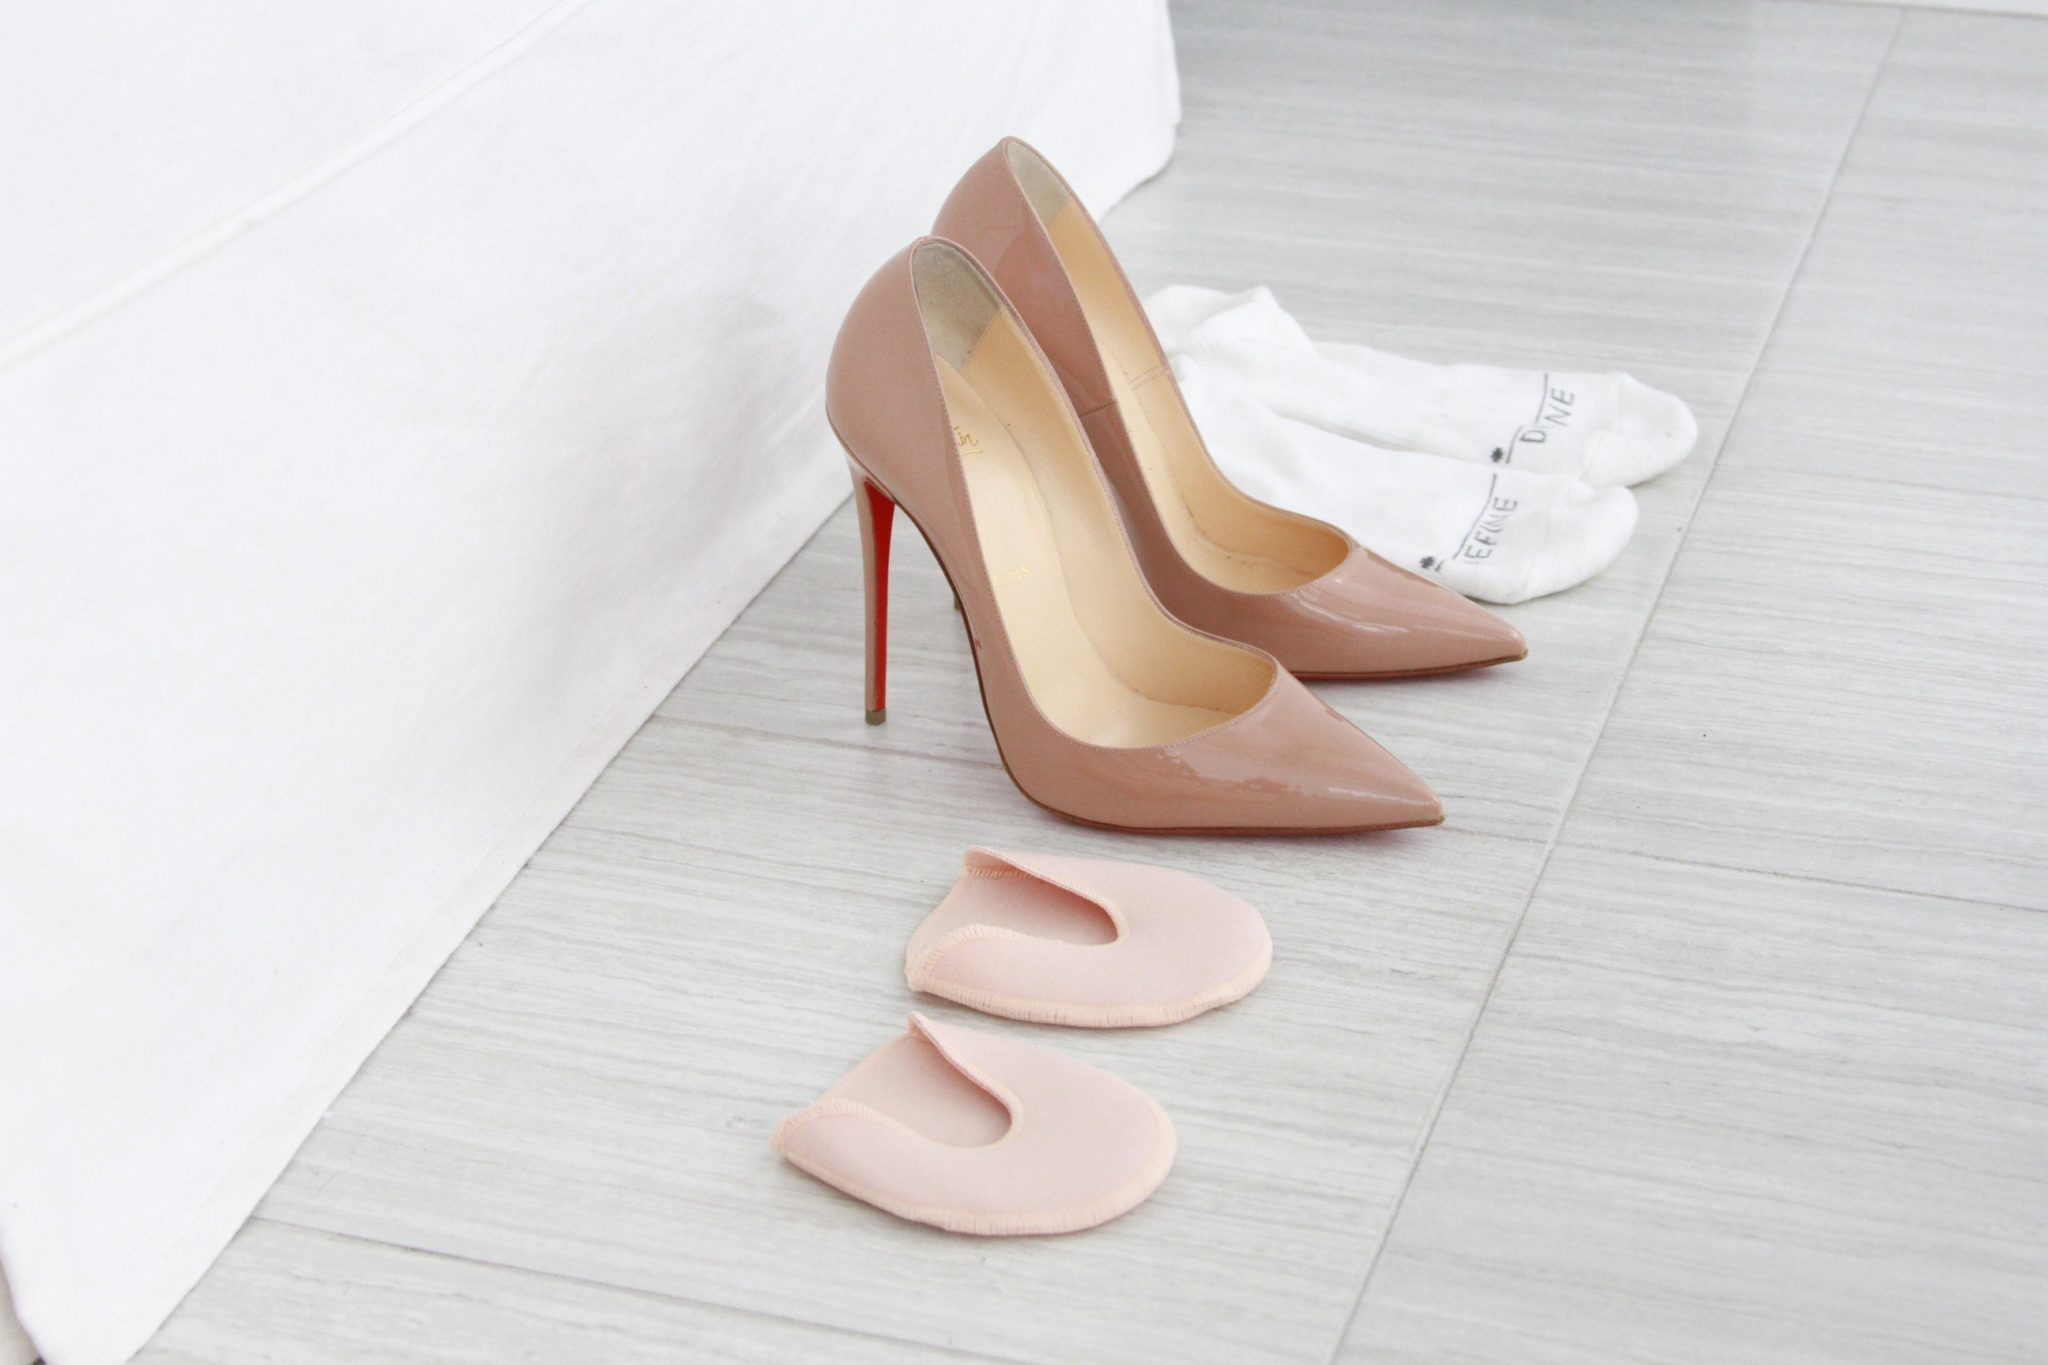 a14c57f33 How To Stretch Louboutin Heels Out and Make Those So Kate's Less ...